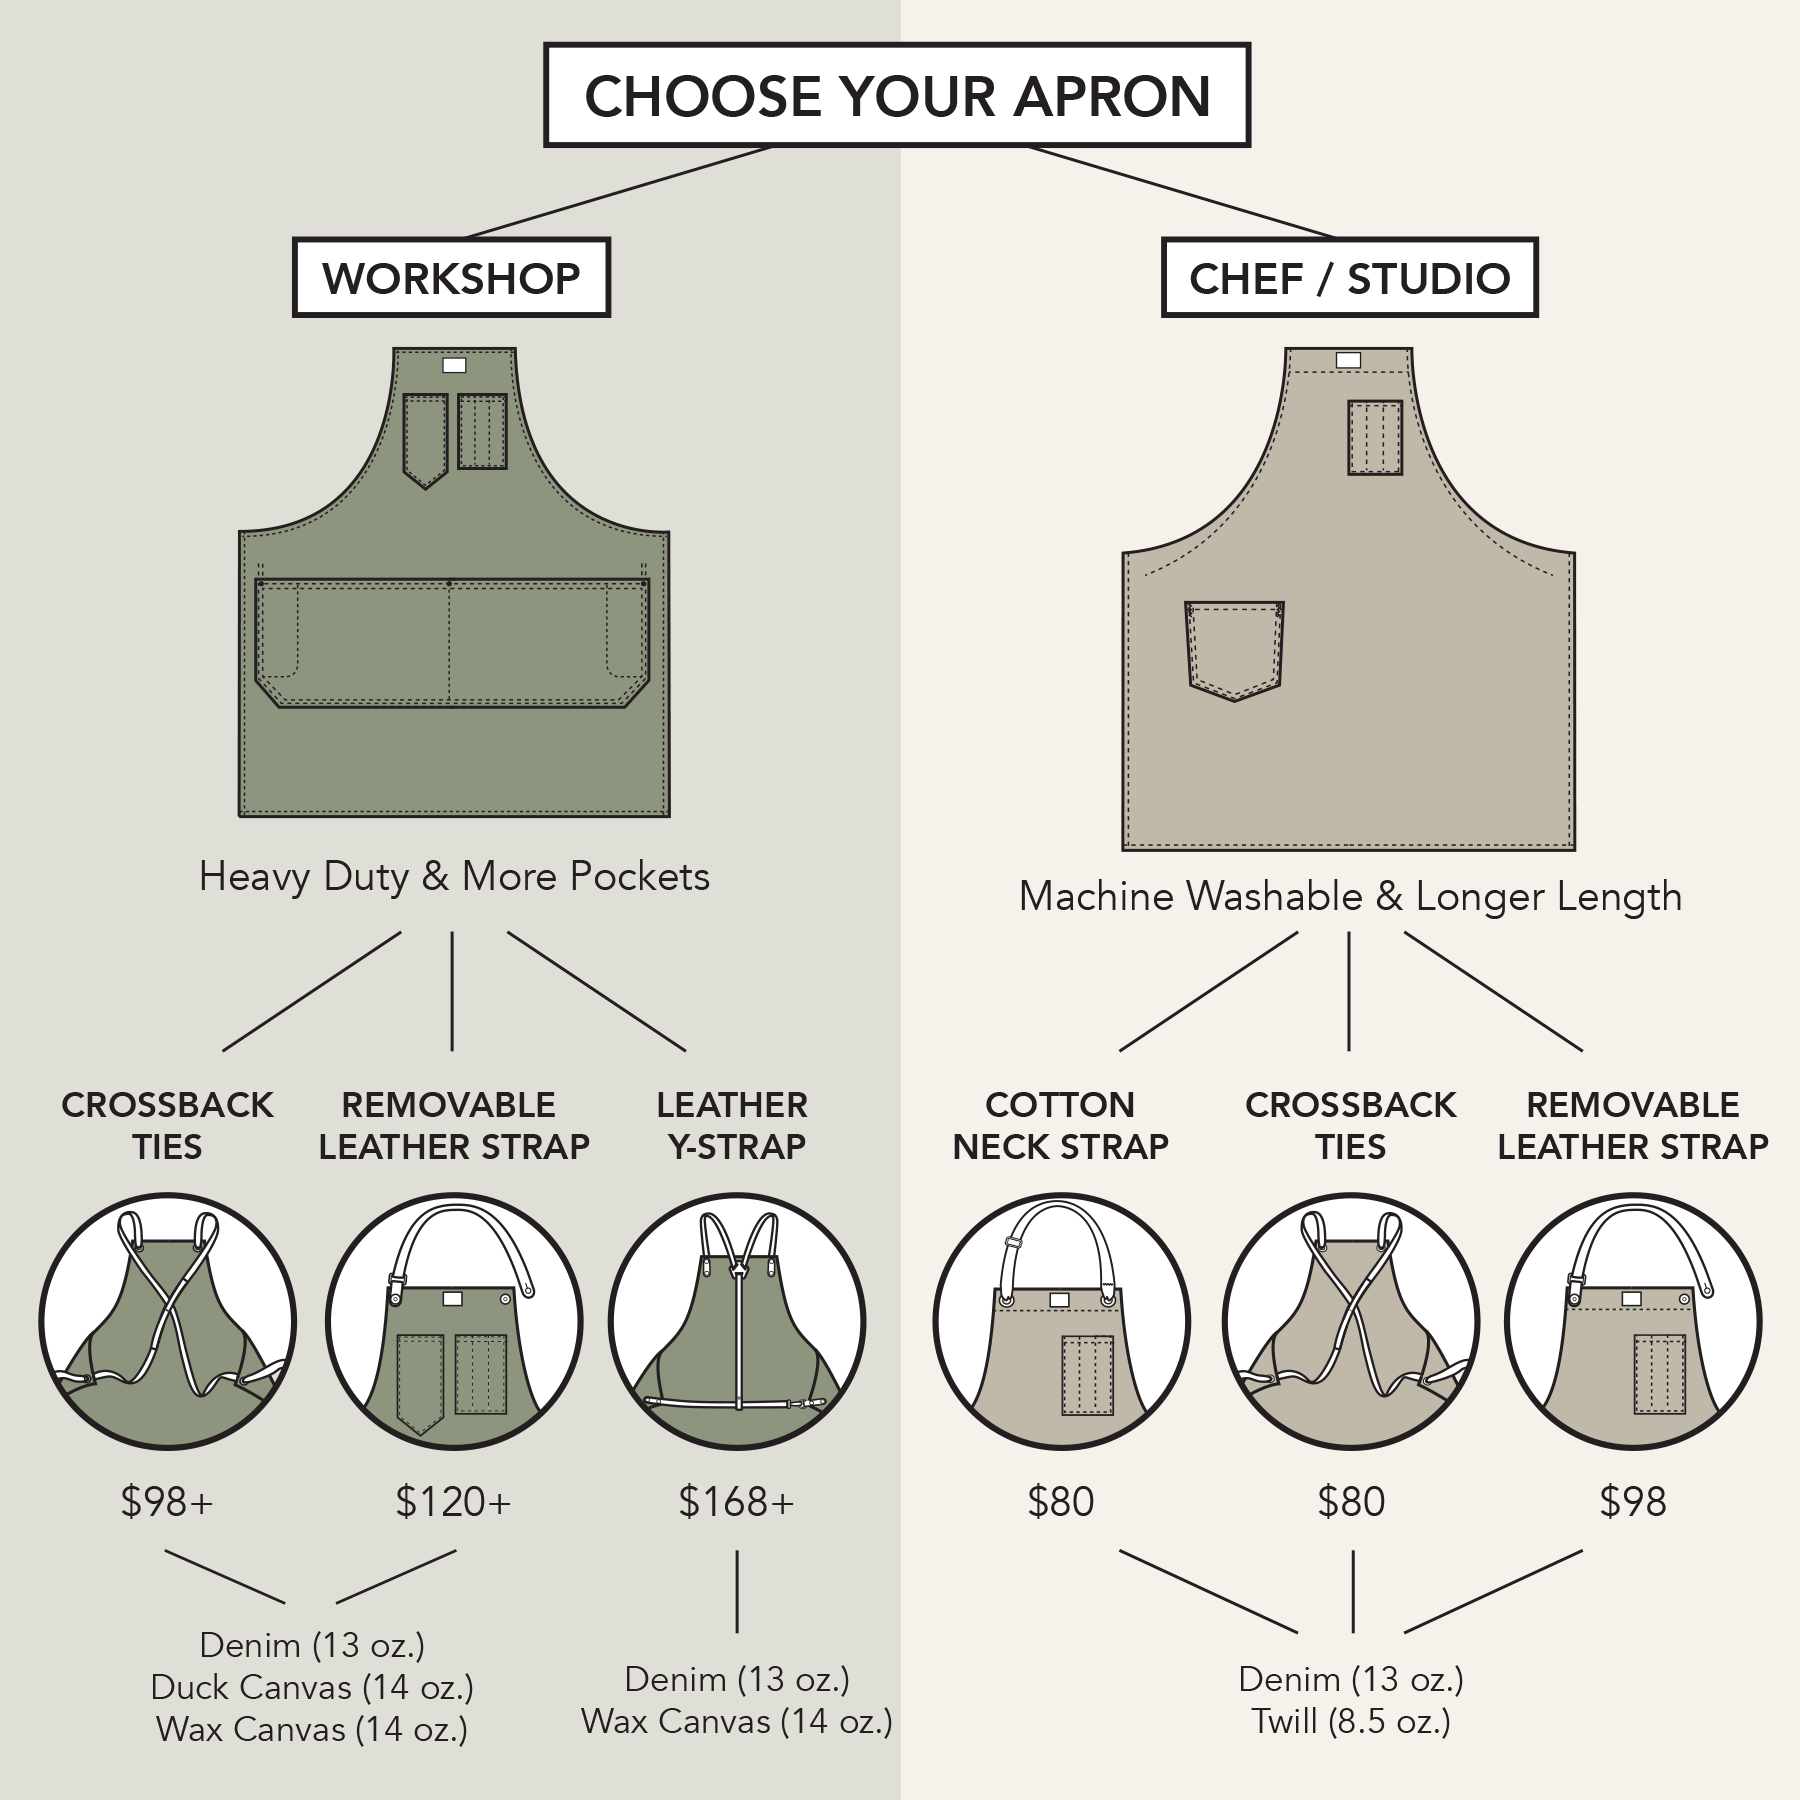 ARTIFACT Apron Flow Chart - Choose Your Apron